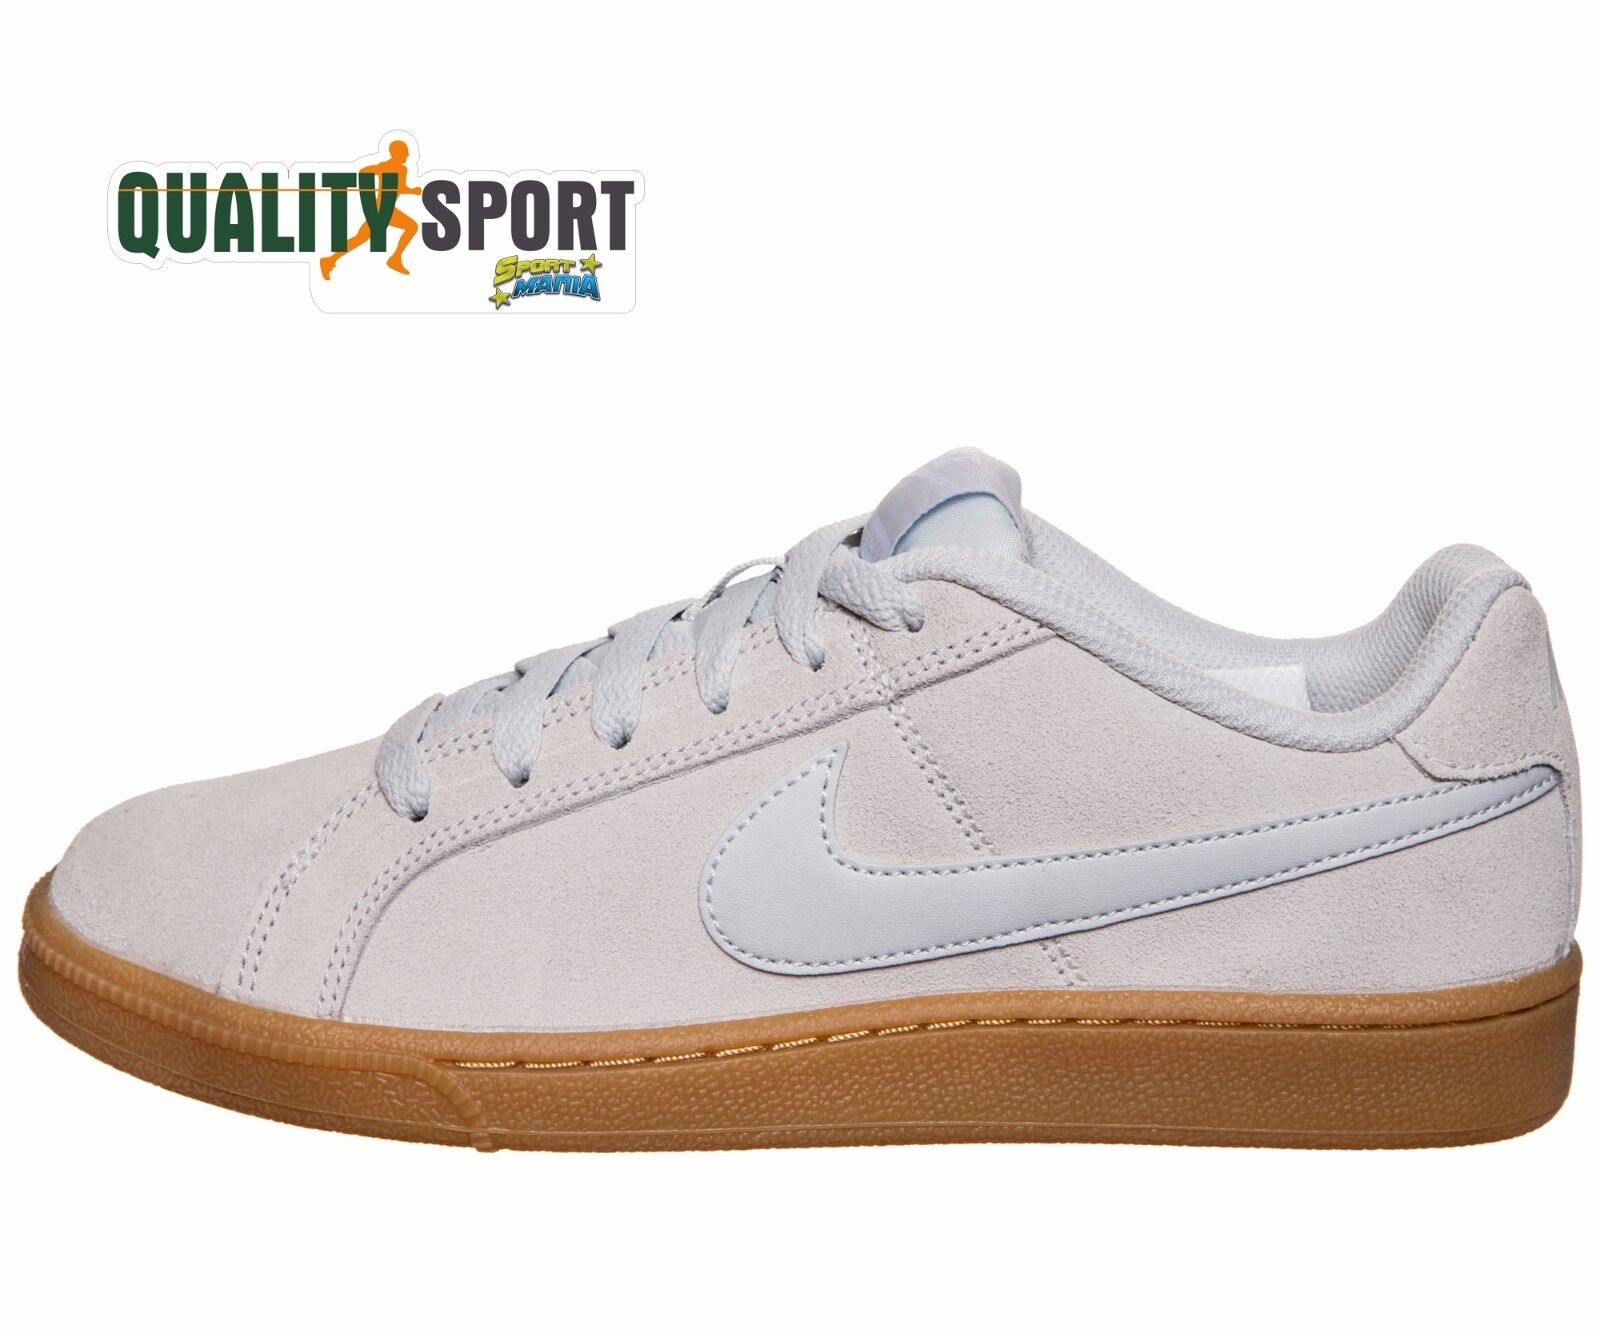 Nike Court Royale Suede grey  women shoes shoes shoes Sportive Sneakers 916795 001 3fb3e6